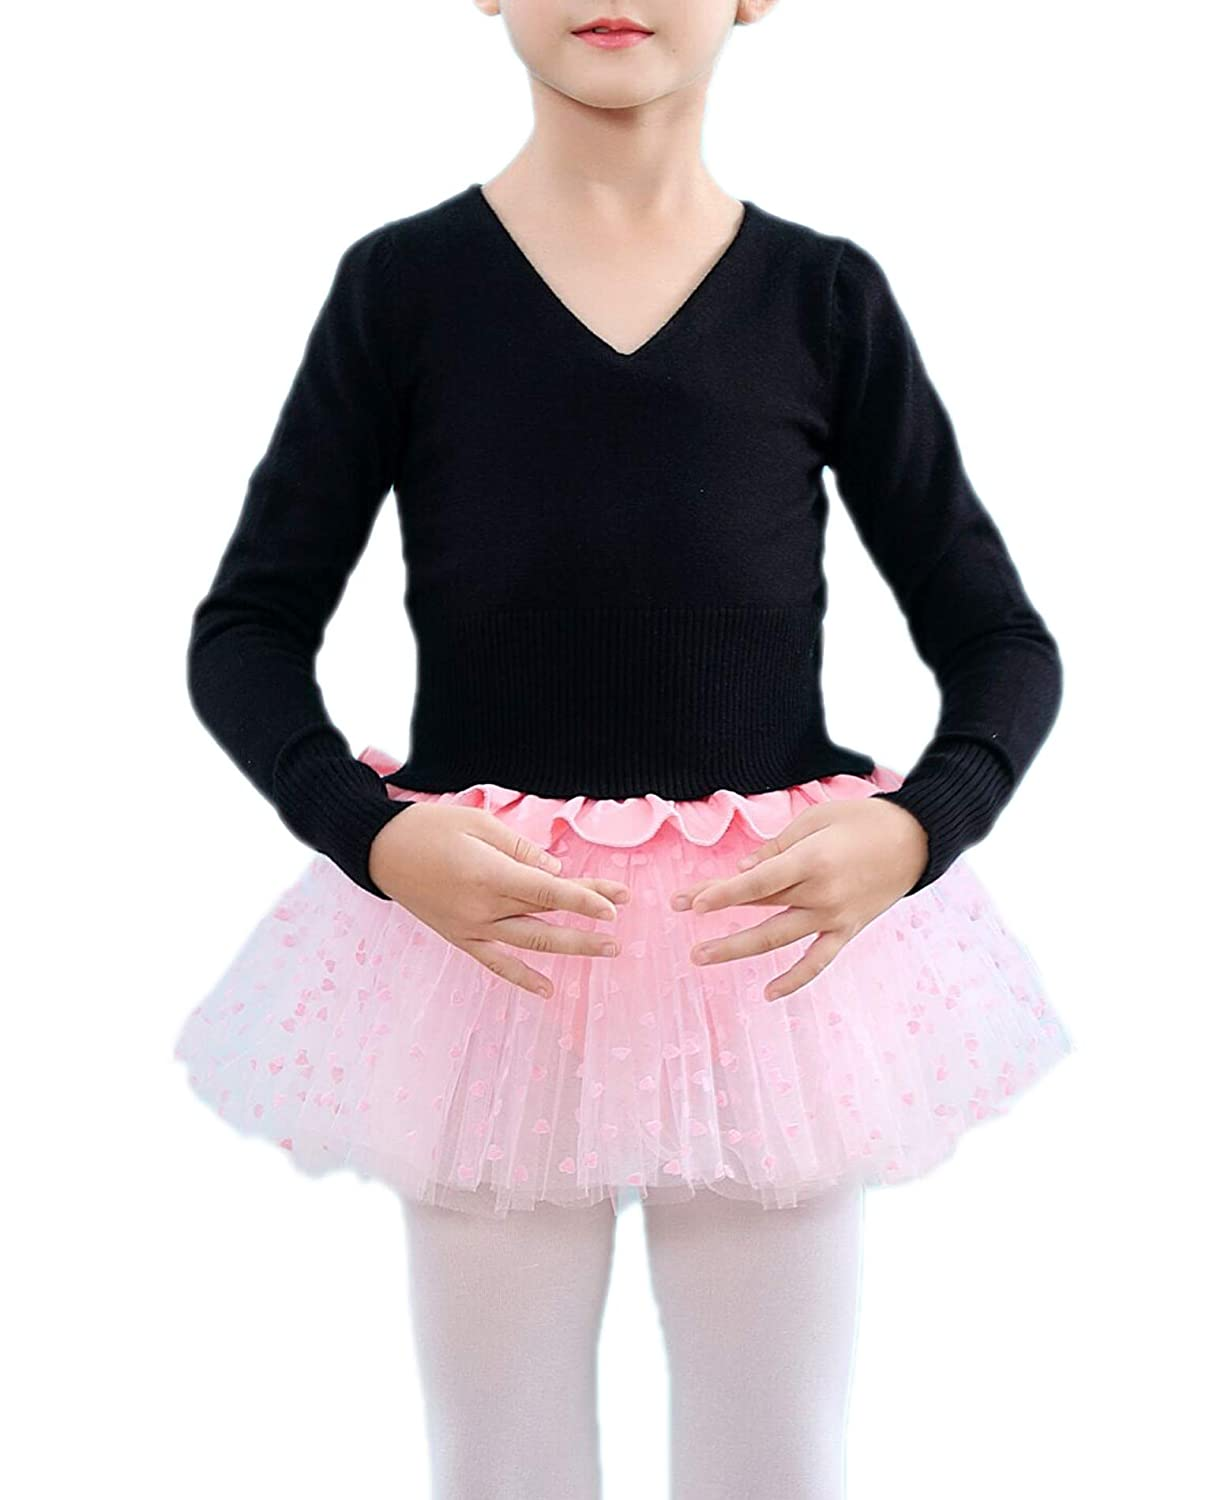 Kidsmian Girls Classic Thick Dance Wear Leotards Ballet Long Sleeve Wrap Top